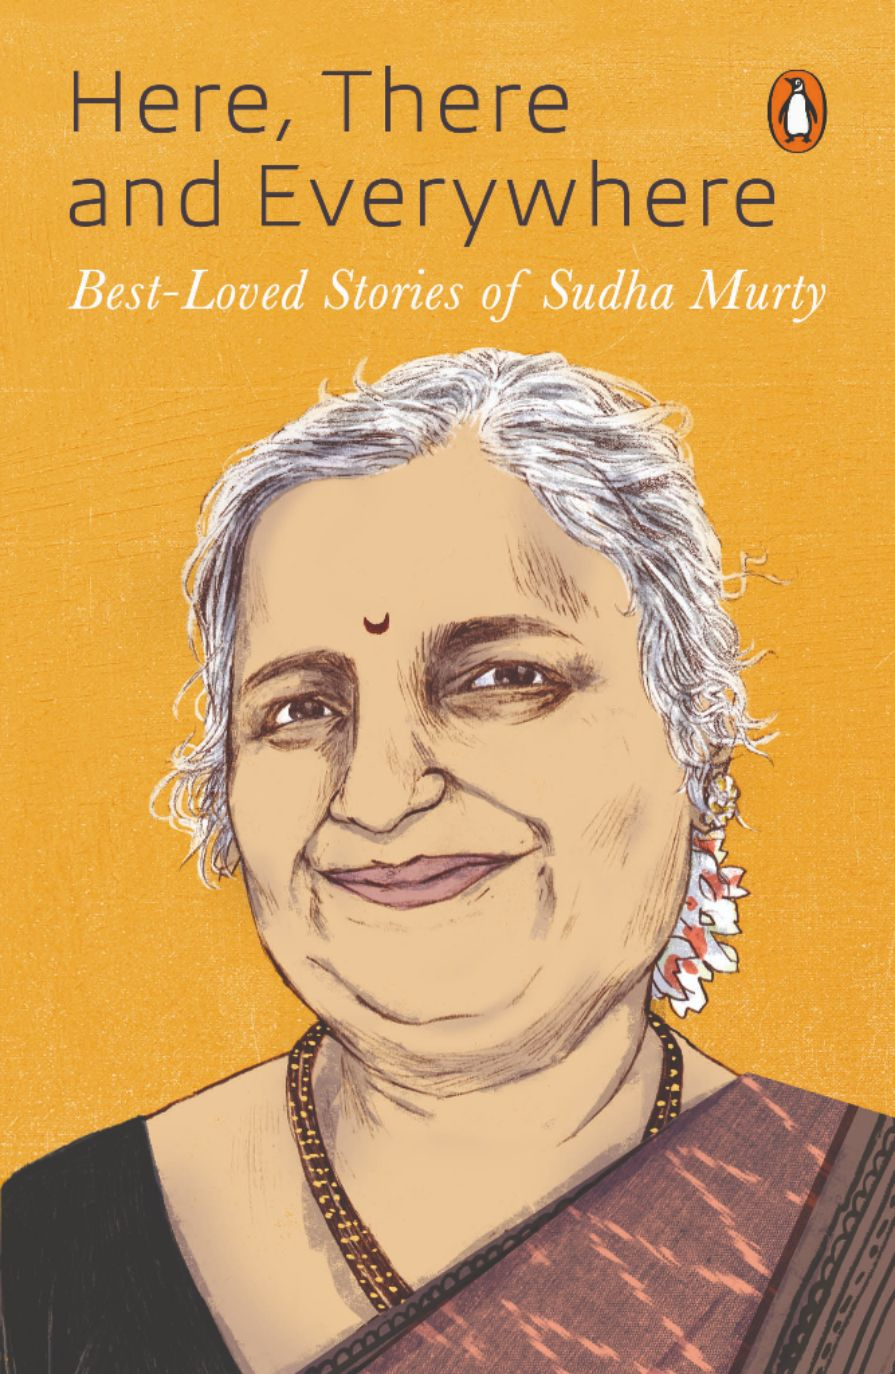 Sudha-Murty-Here-There-And-Everywhere